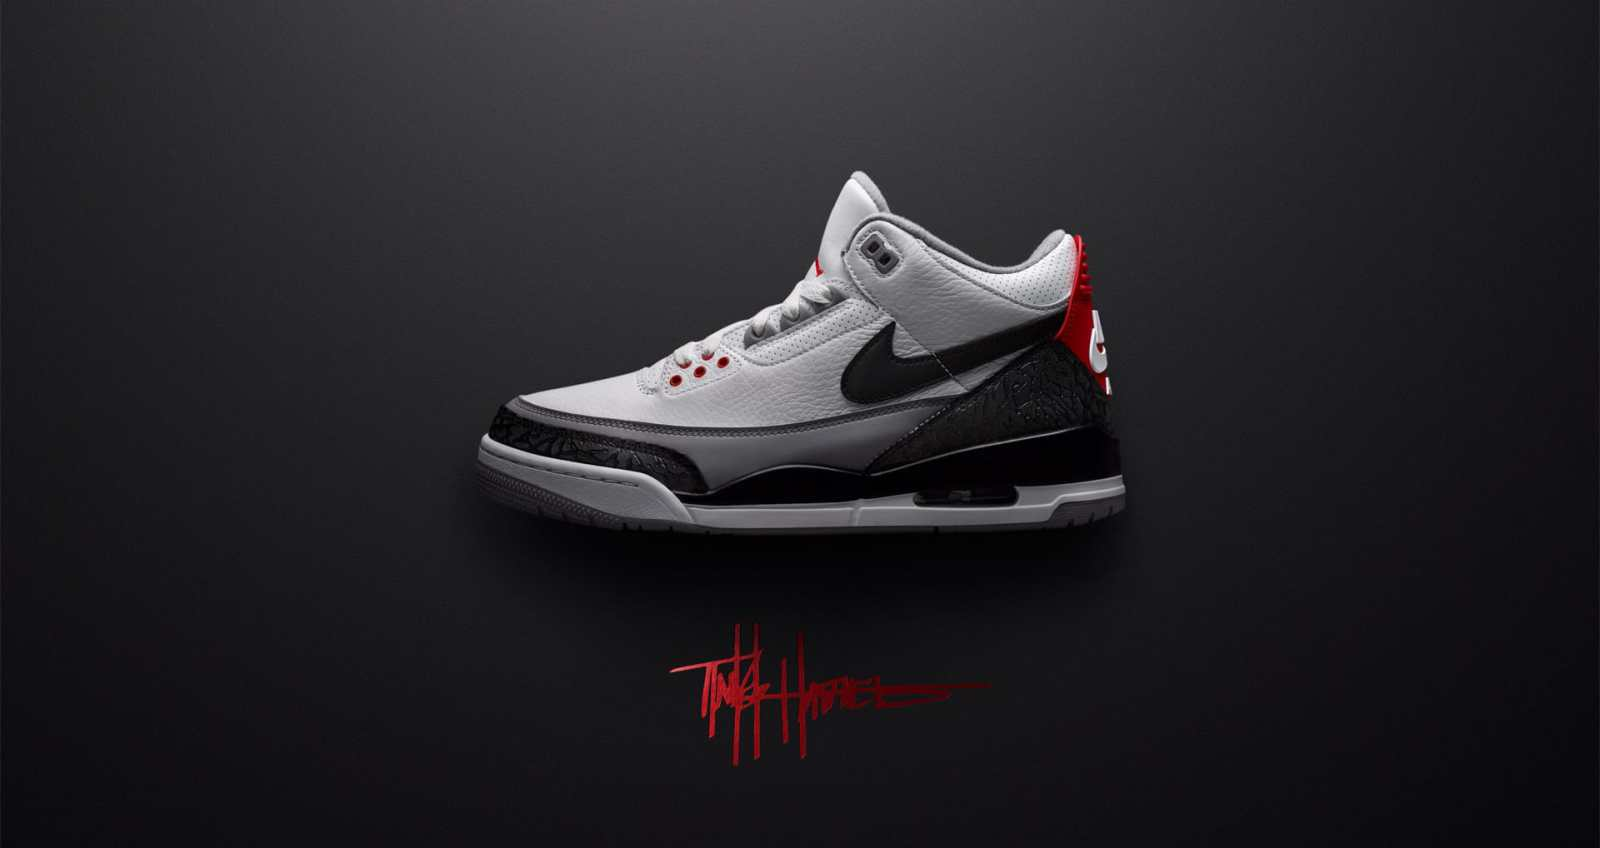 076f1ea7f39f58 Nike continues Air Jordan III push with Tinker Hatfield inspired designs ...